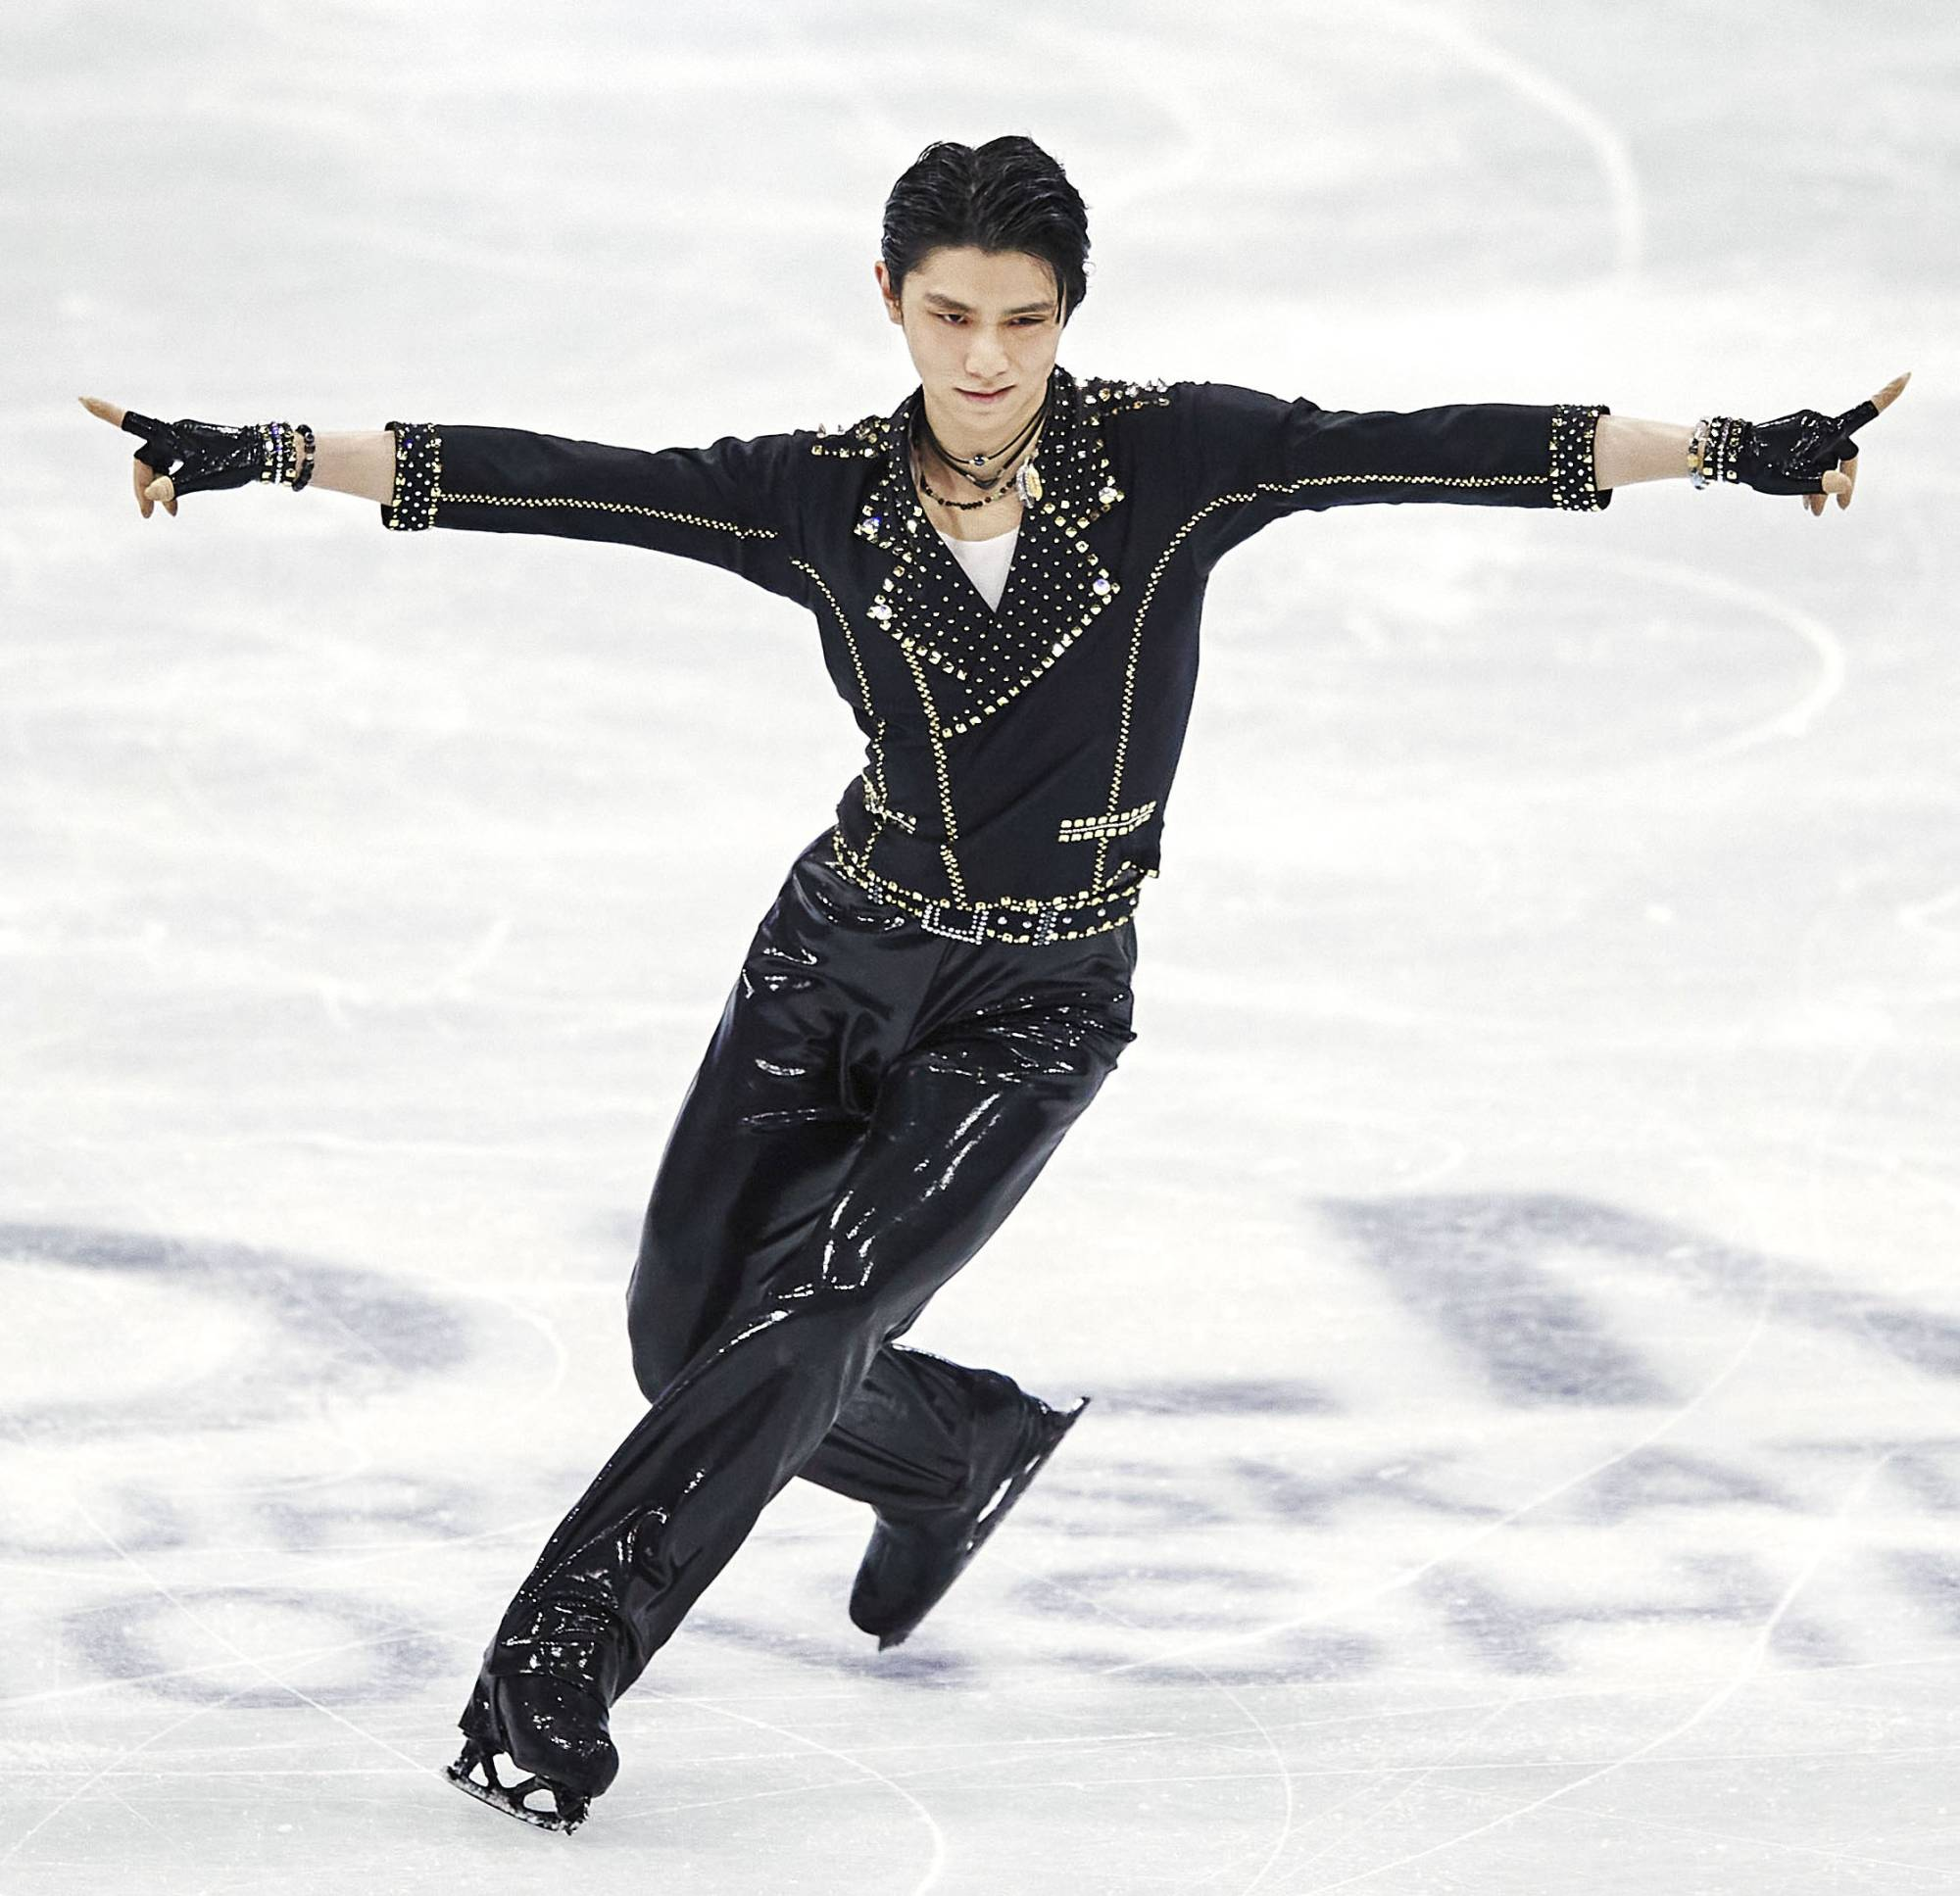 Yuzuru Hanyu competes in the Men's Short Program during day two of the ISU World Figure Skating Championships at Ericsson Globe, on Thursday, in Stockholm.   ISU / GETTY IMAGES / VIA KYODO